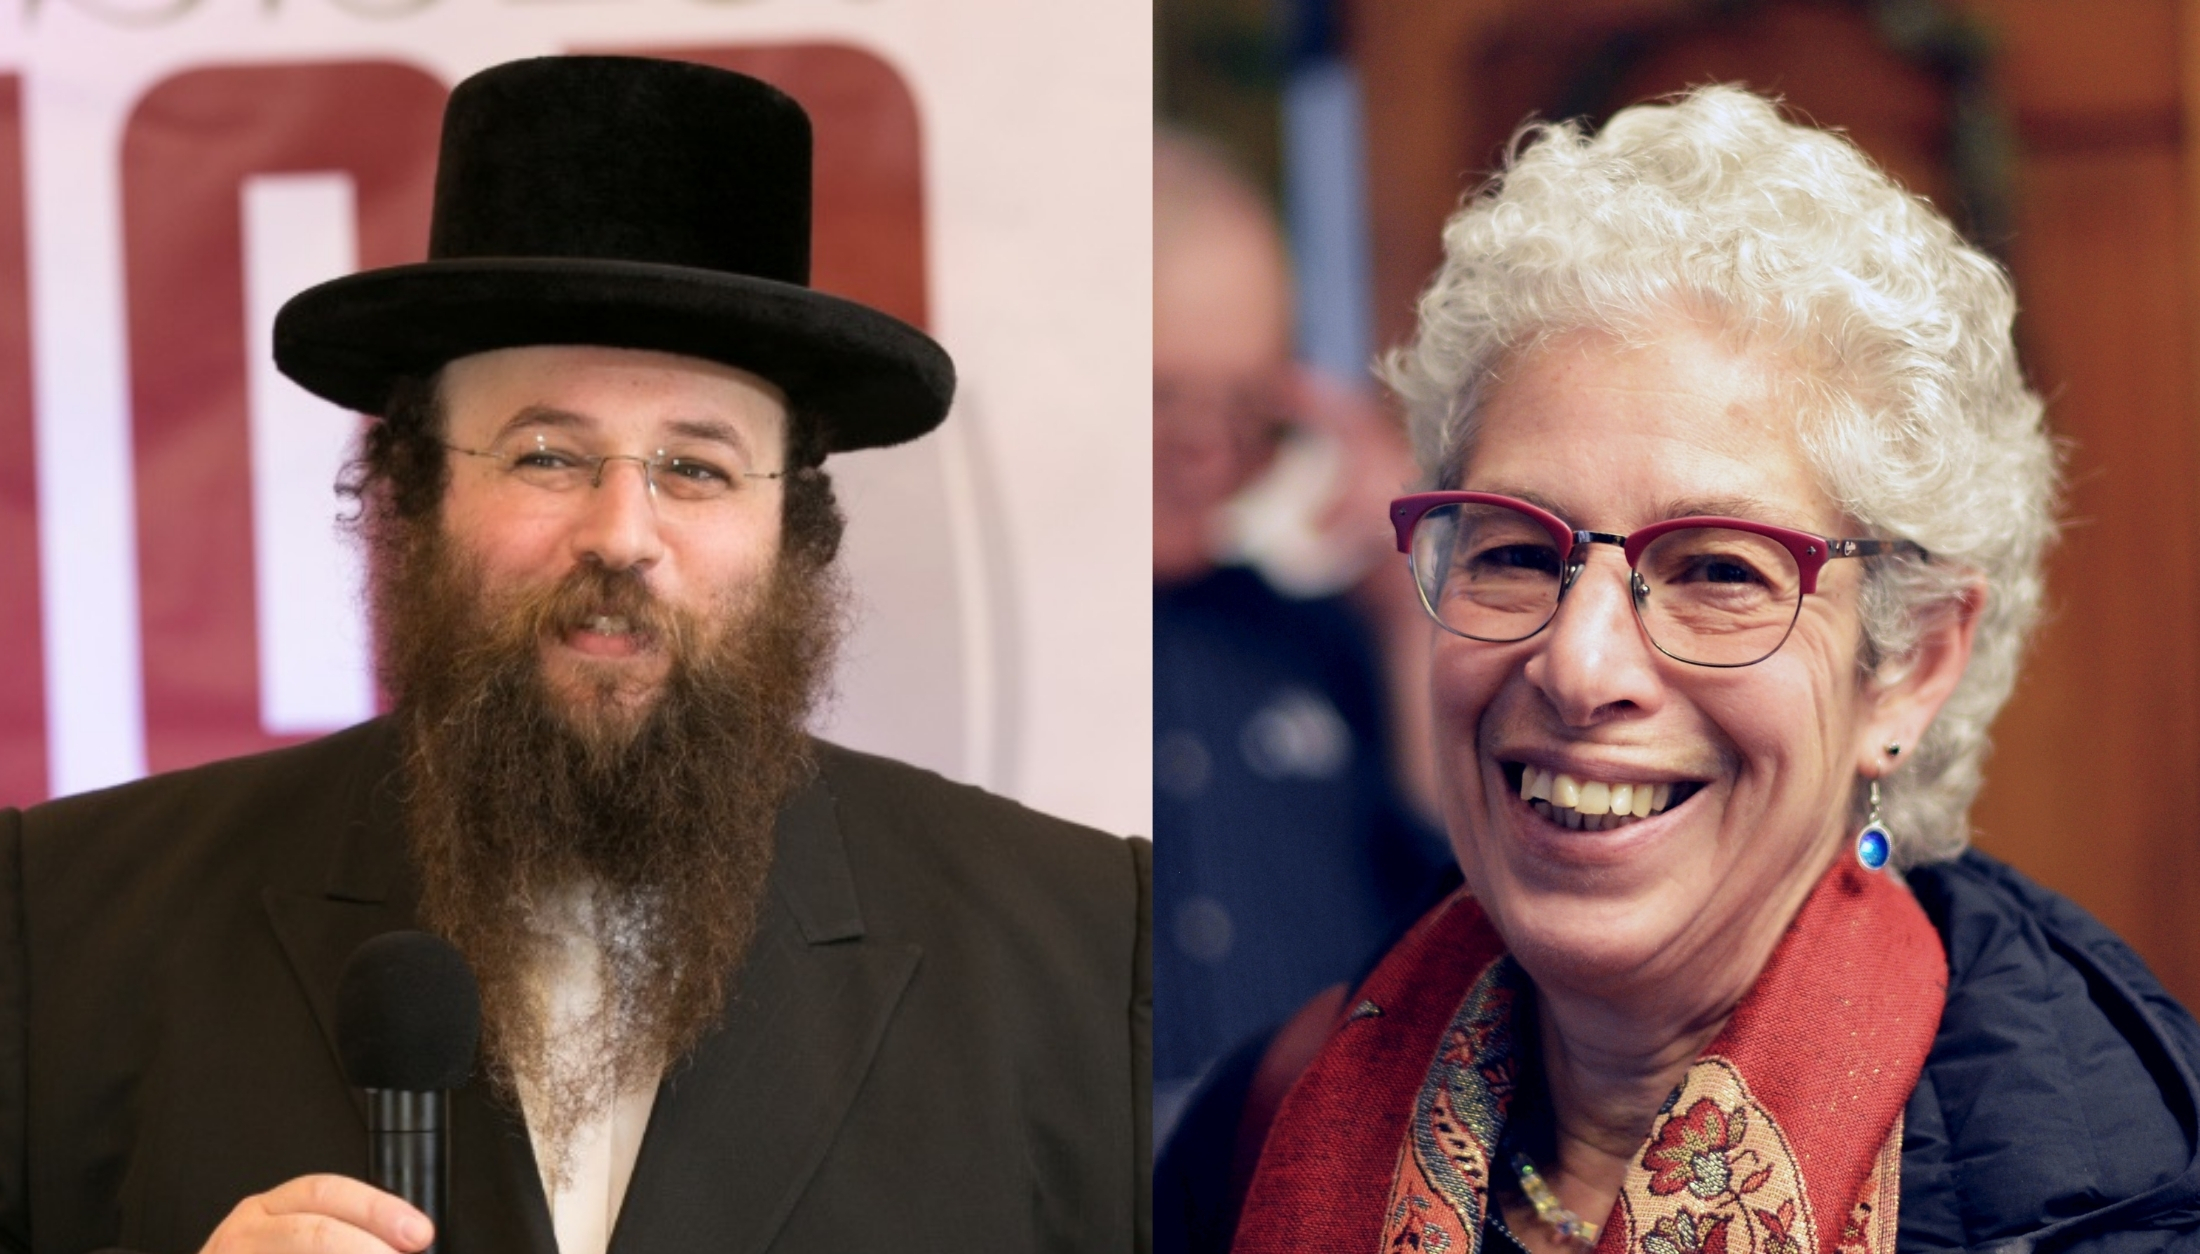 Masbia ED Alexander Rapaport and the Blog Lilith Journalist Eleanor J Bader